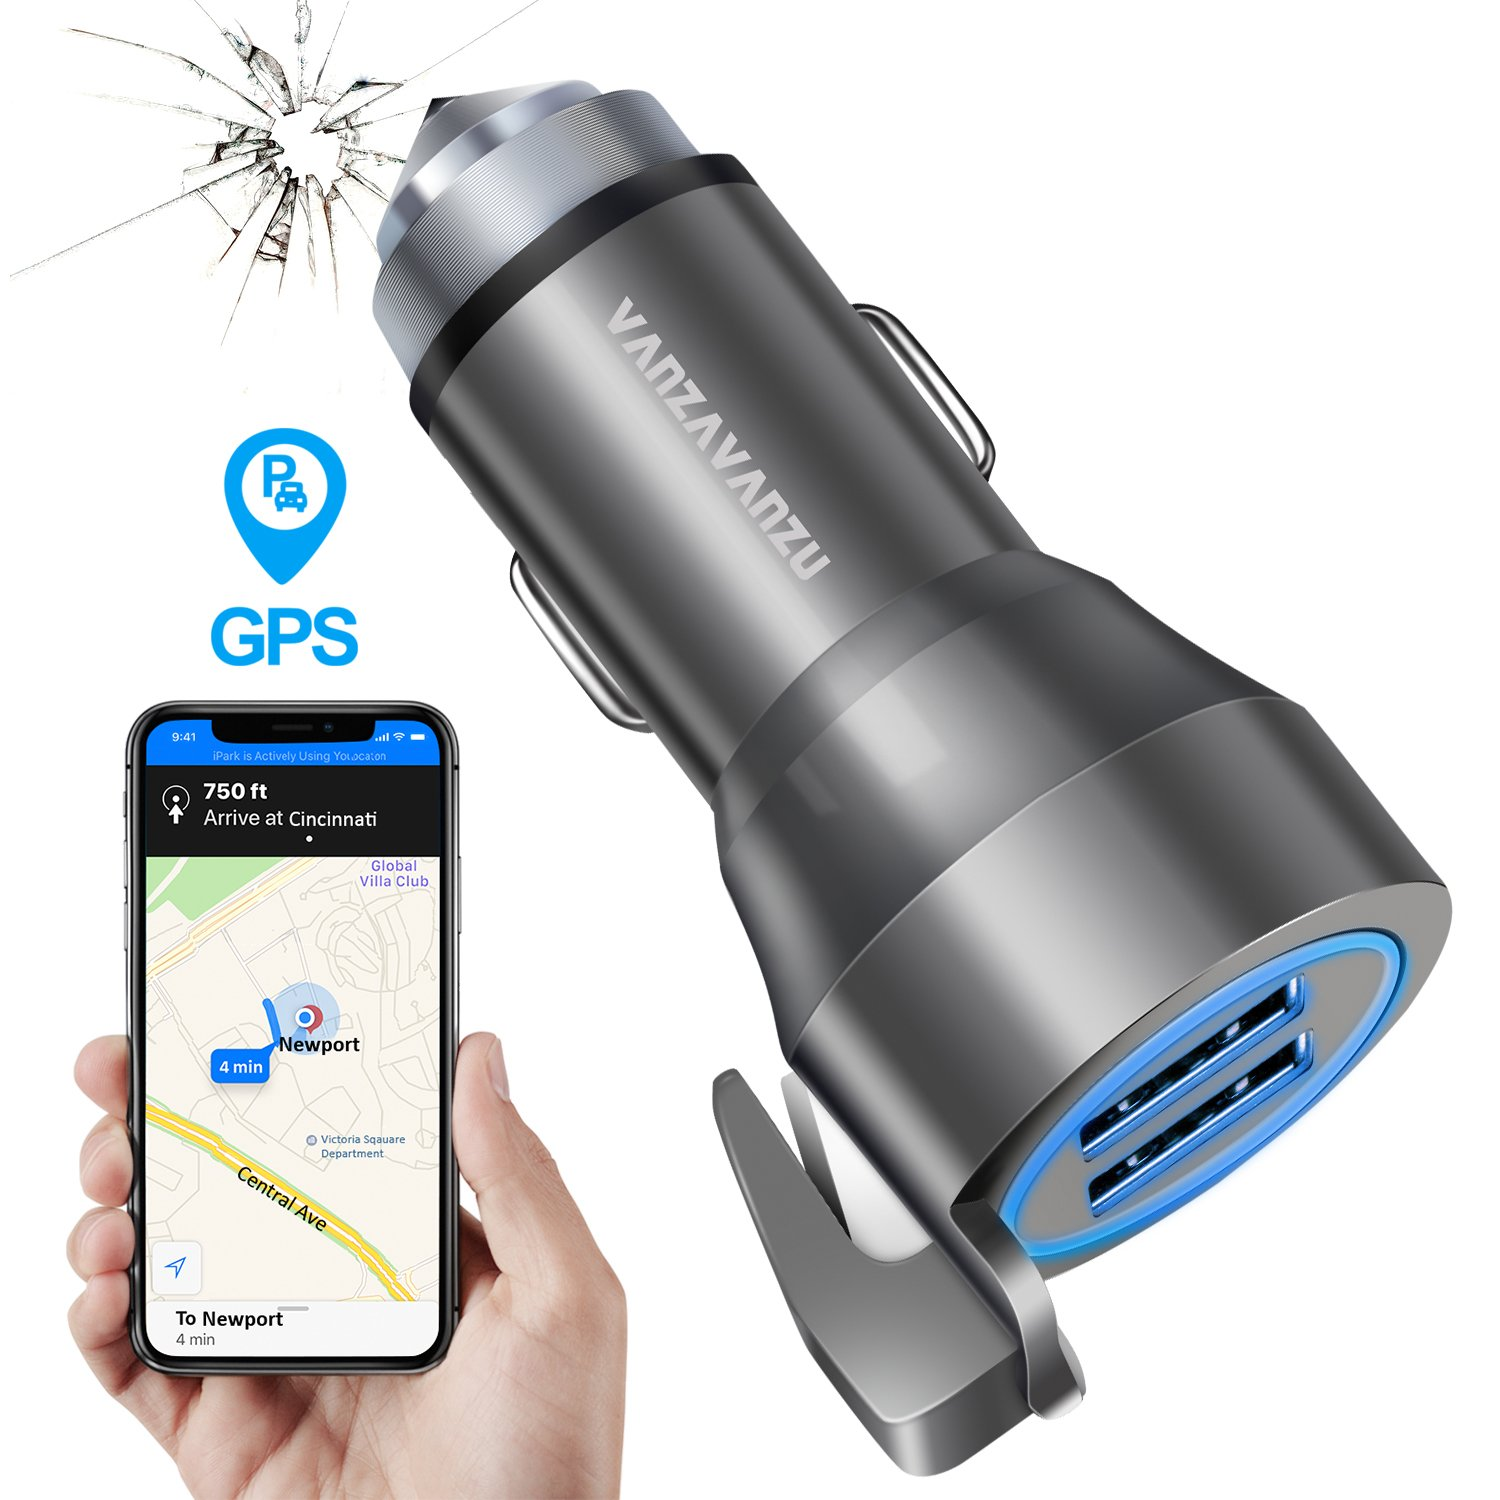 Quick Car Charger with GPS Car Finder Hammer Belt Cutter - Dual USB Ports 24W 4.8A LED Fast Charging Adapter for Apple Cell Phone iPhone X 8 7 6 Plus Android Samsung Galaxy S9 S8 S7 Note Laptop iPad